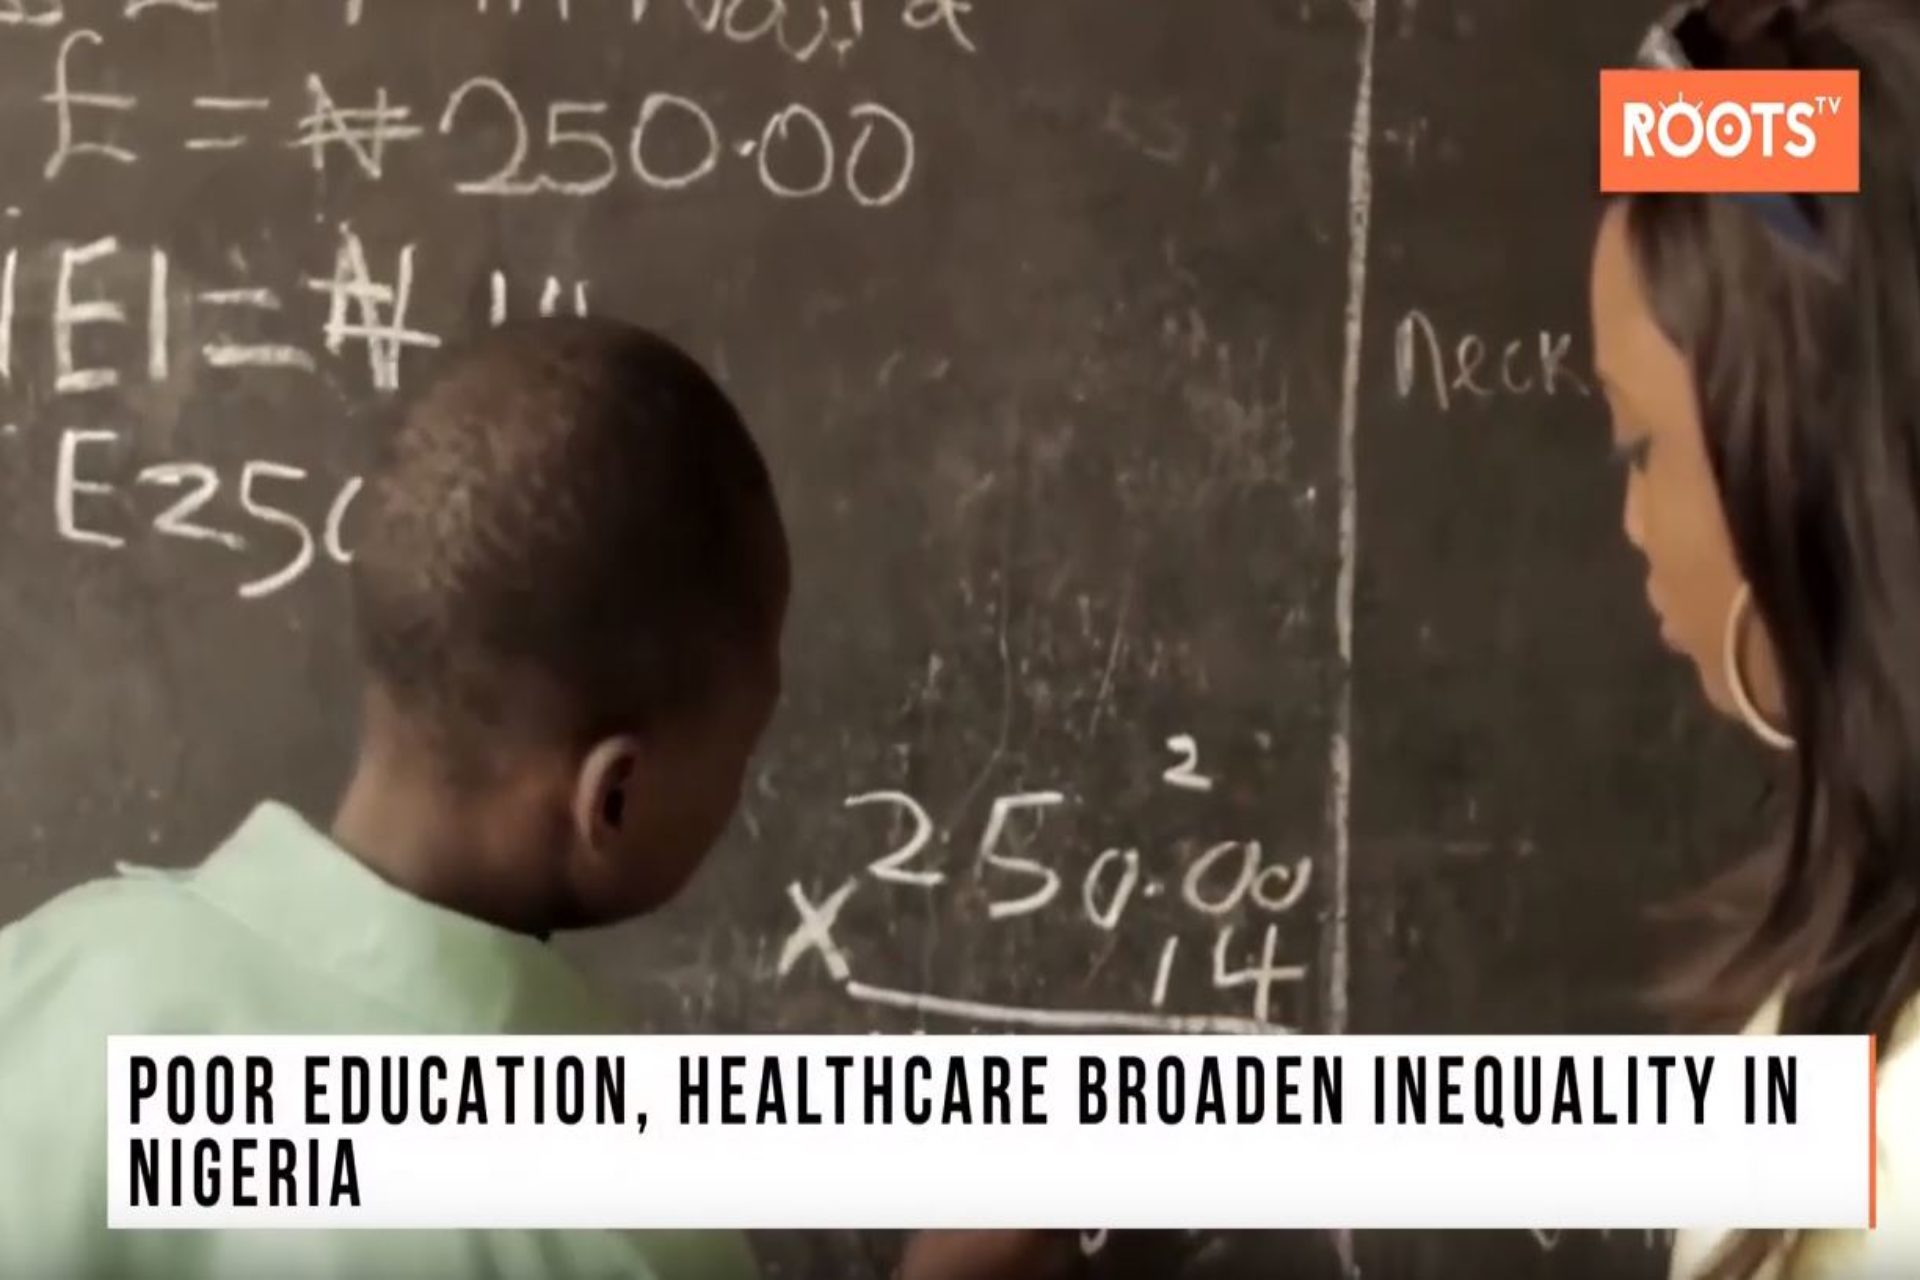 Poor Education, Healthcare Broadens Inequality in Nigeria